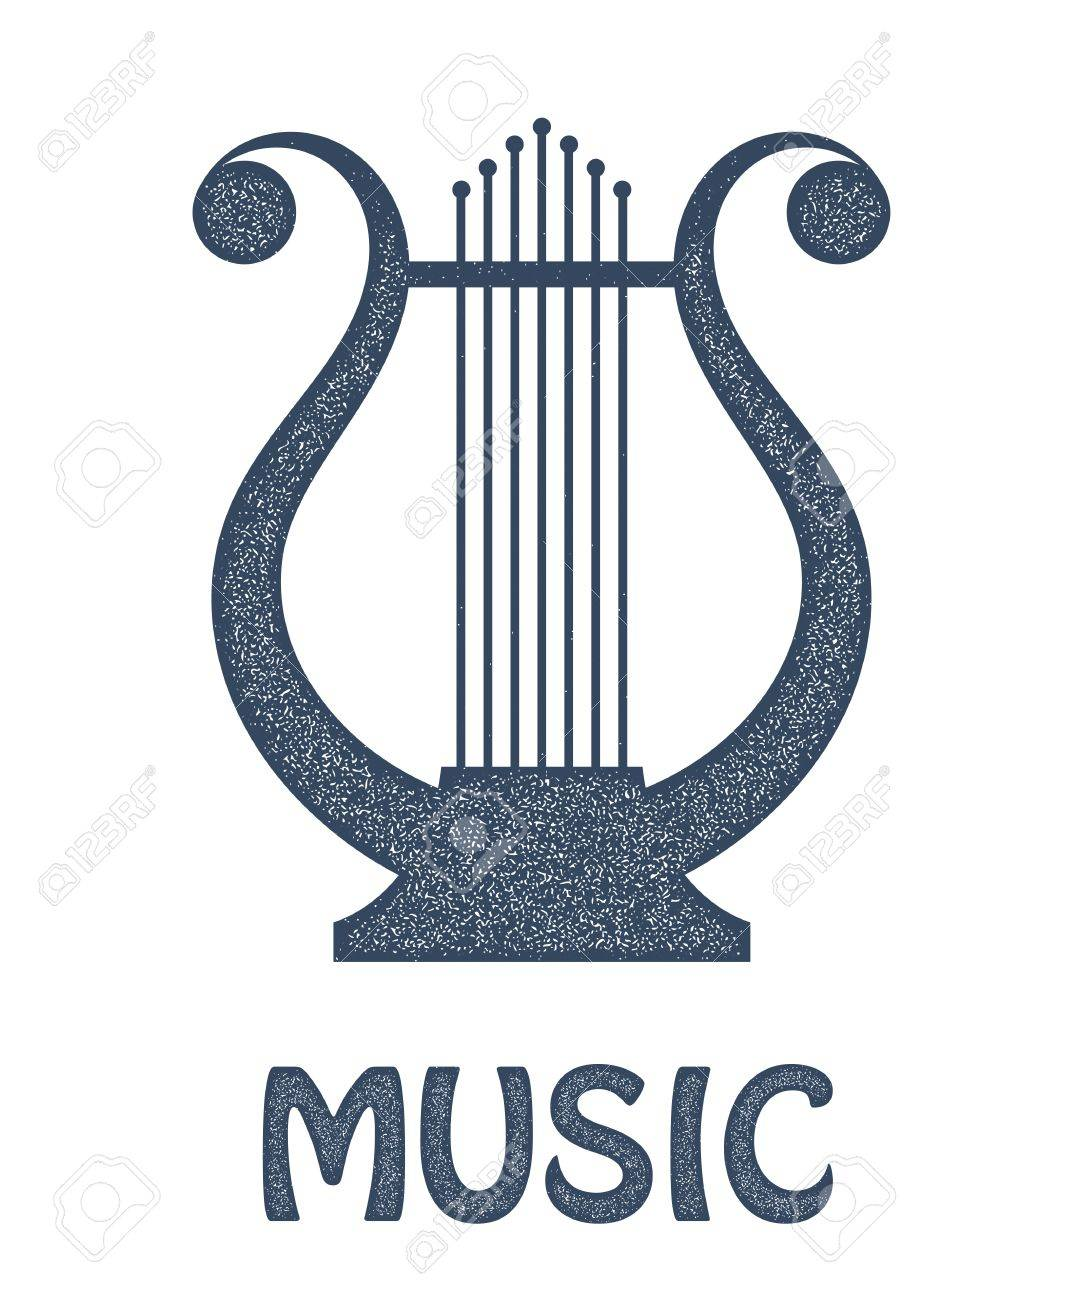 Vector monochrome image of vintage Lyre on a white background